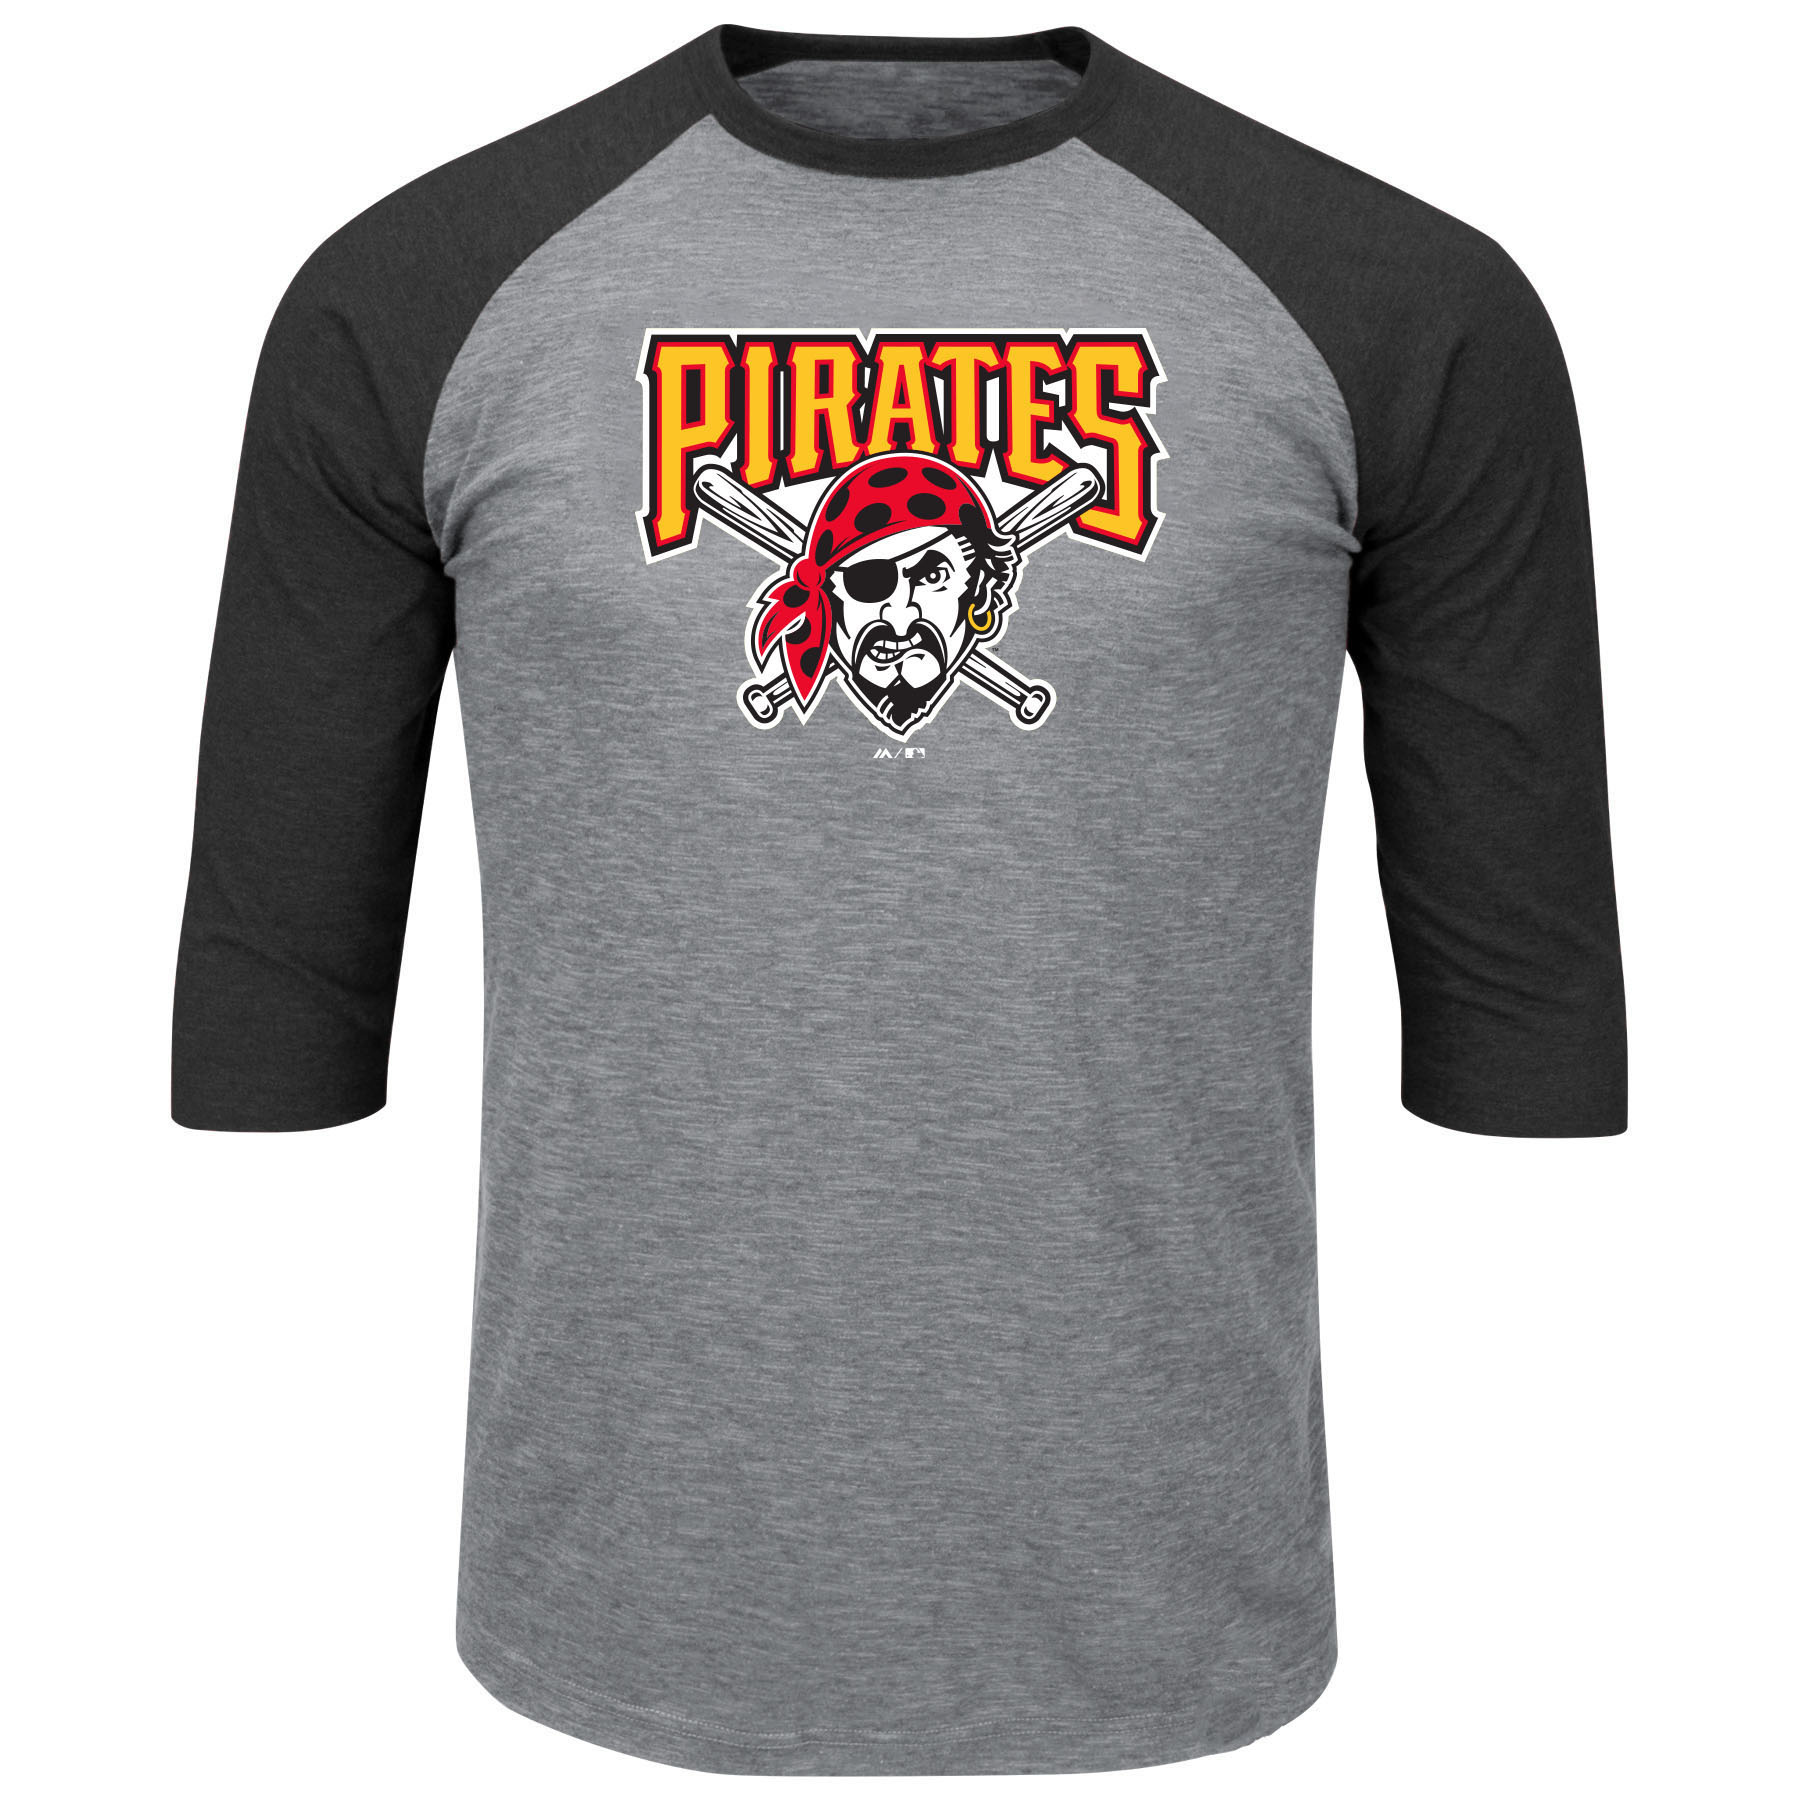 Pittsburgh Pirates Majestic Big & Tall Cooperstown Collection 3/4-Sleeve Raglan T-Shirt - Heathered Gray/Black